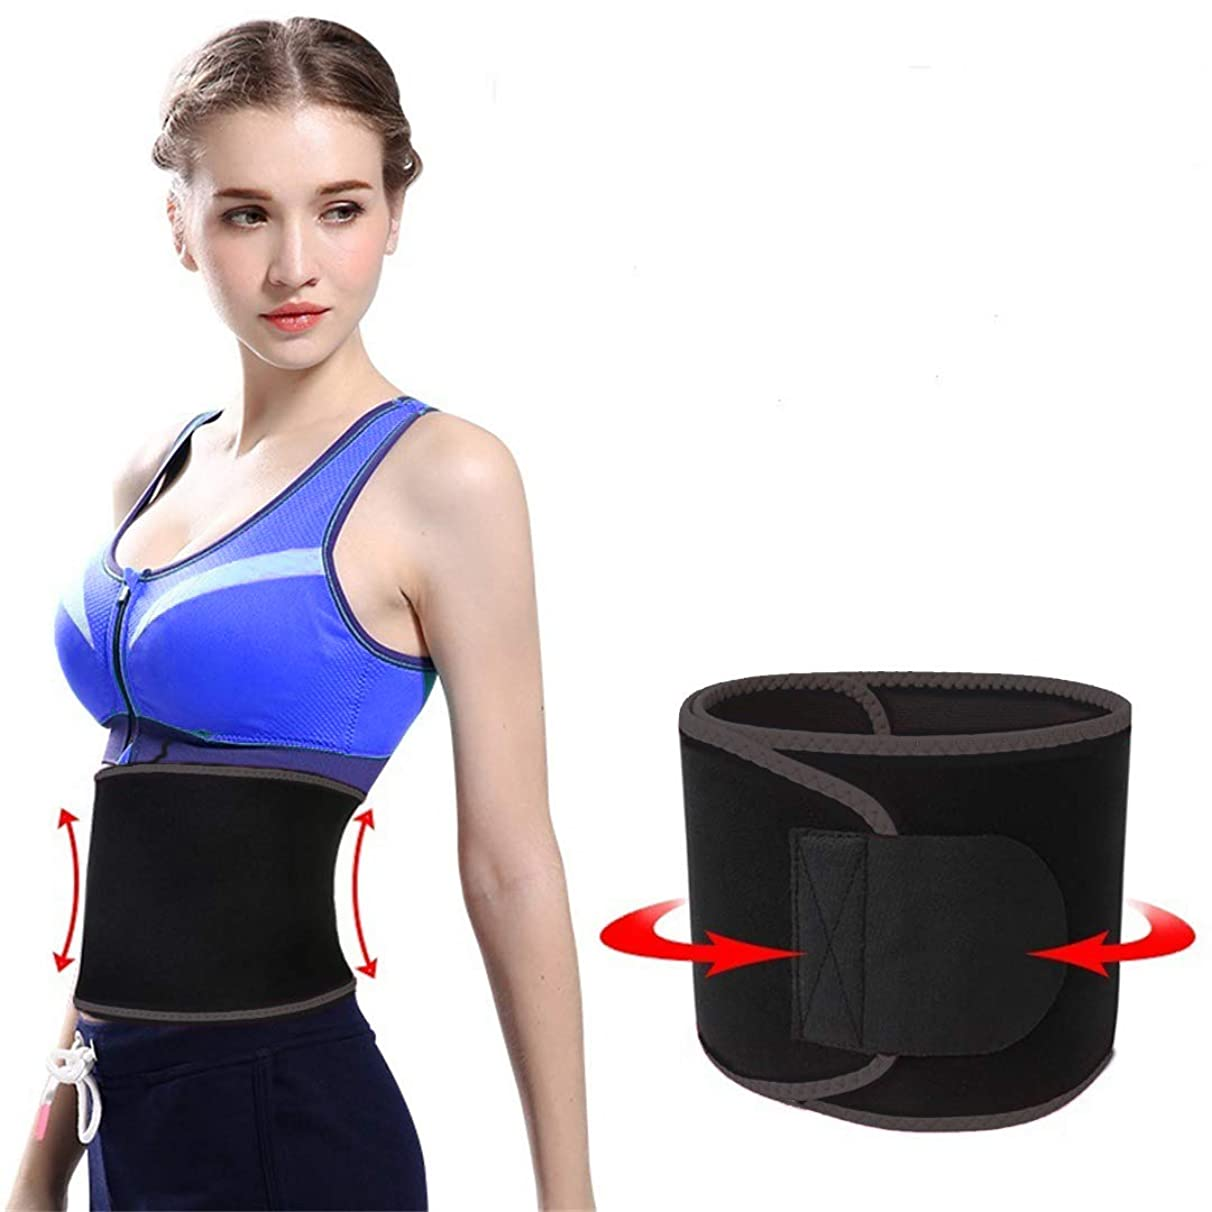 HMBON Sweat Waist Slimmer Waist Trainer,Waist Trimmer Belt for Women & Men Weight Loss,Shape The Waist Curve of The Human Body, 2 Sizes (Length Up to 40''/ 48'')